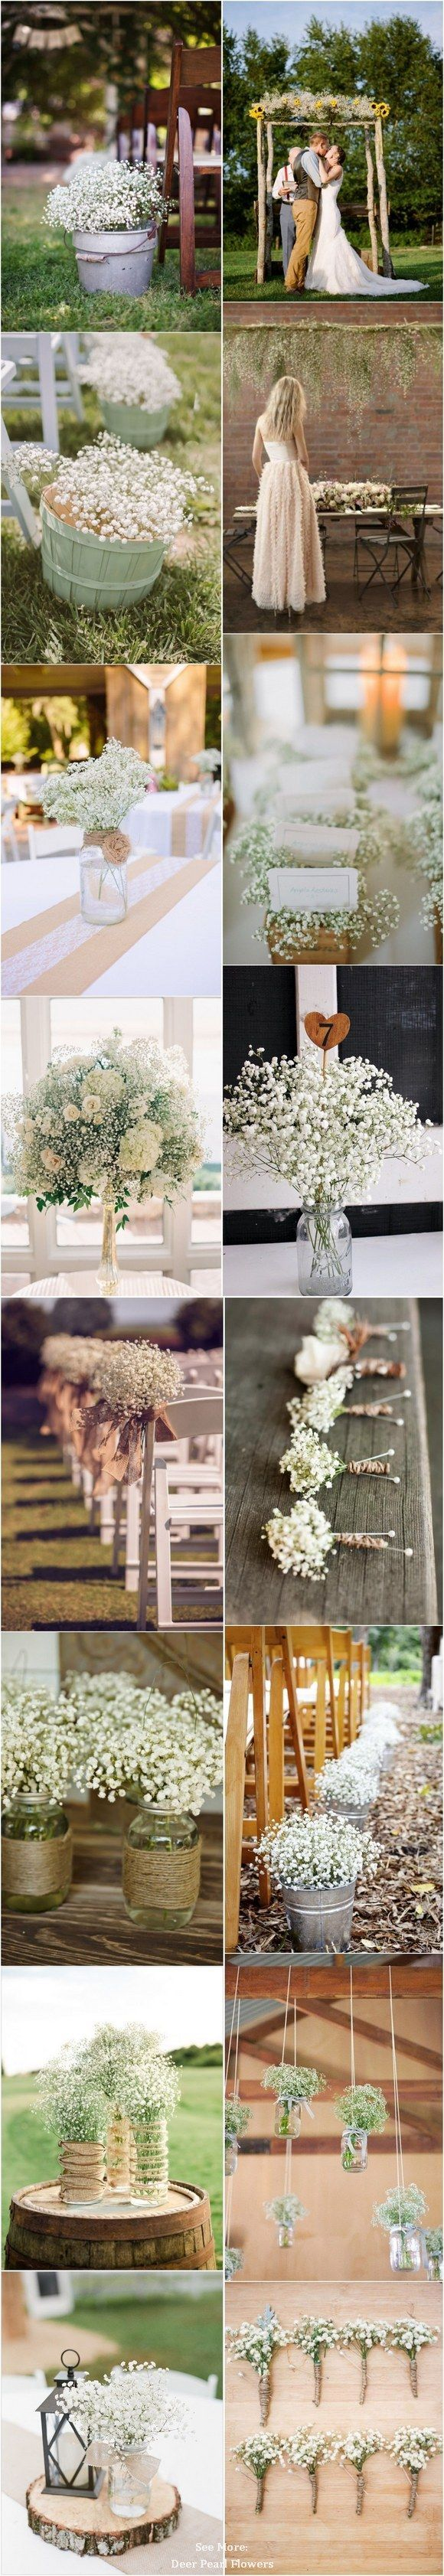 126 best spring wedding ideas images on pinterest marriage